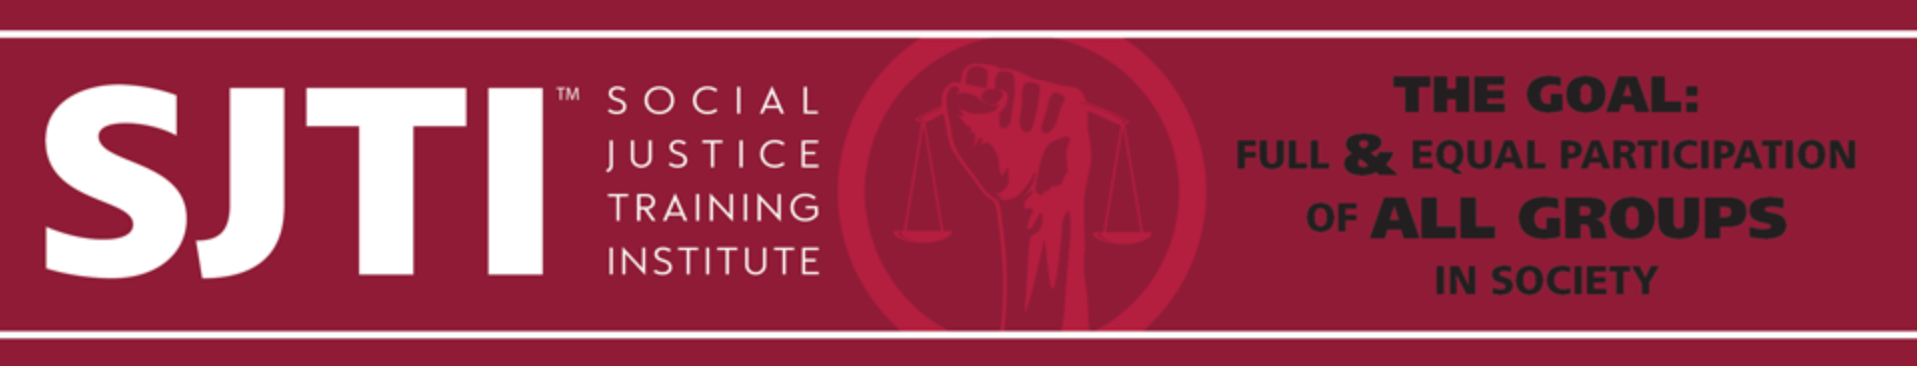 Social Justice Training Institute 2017